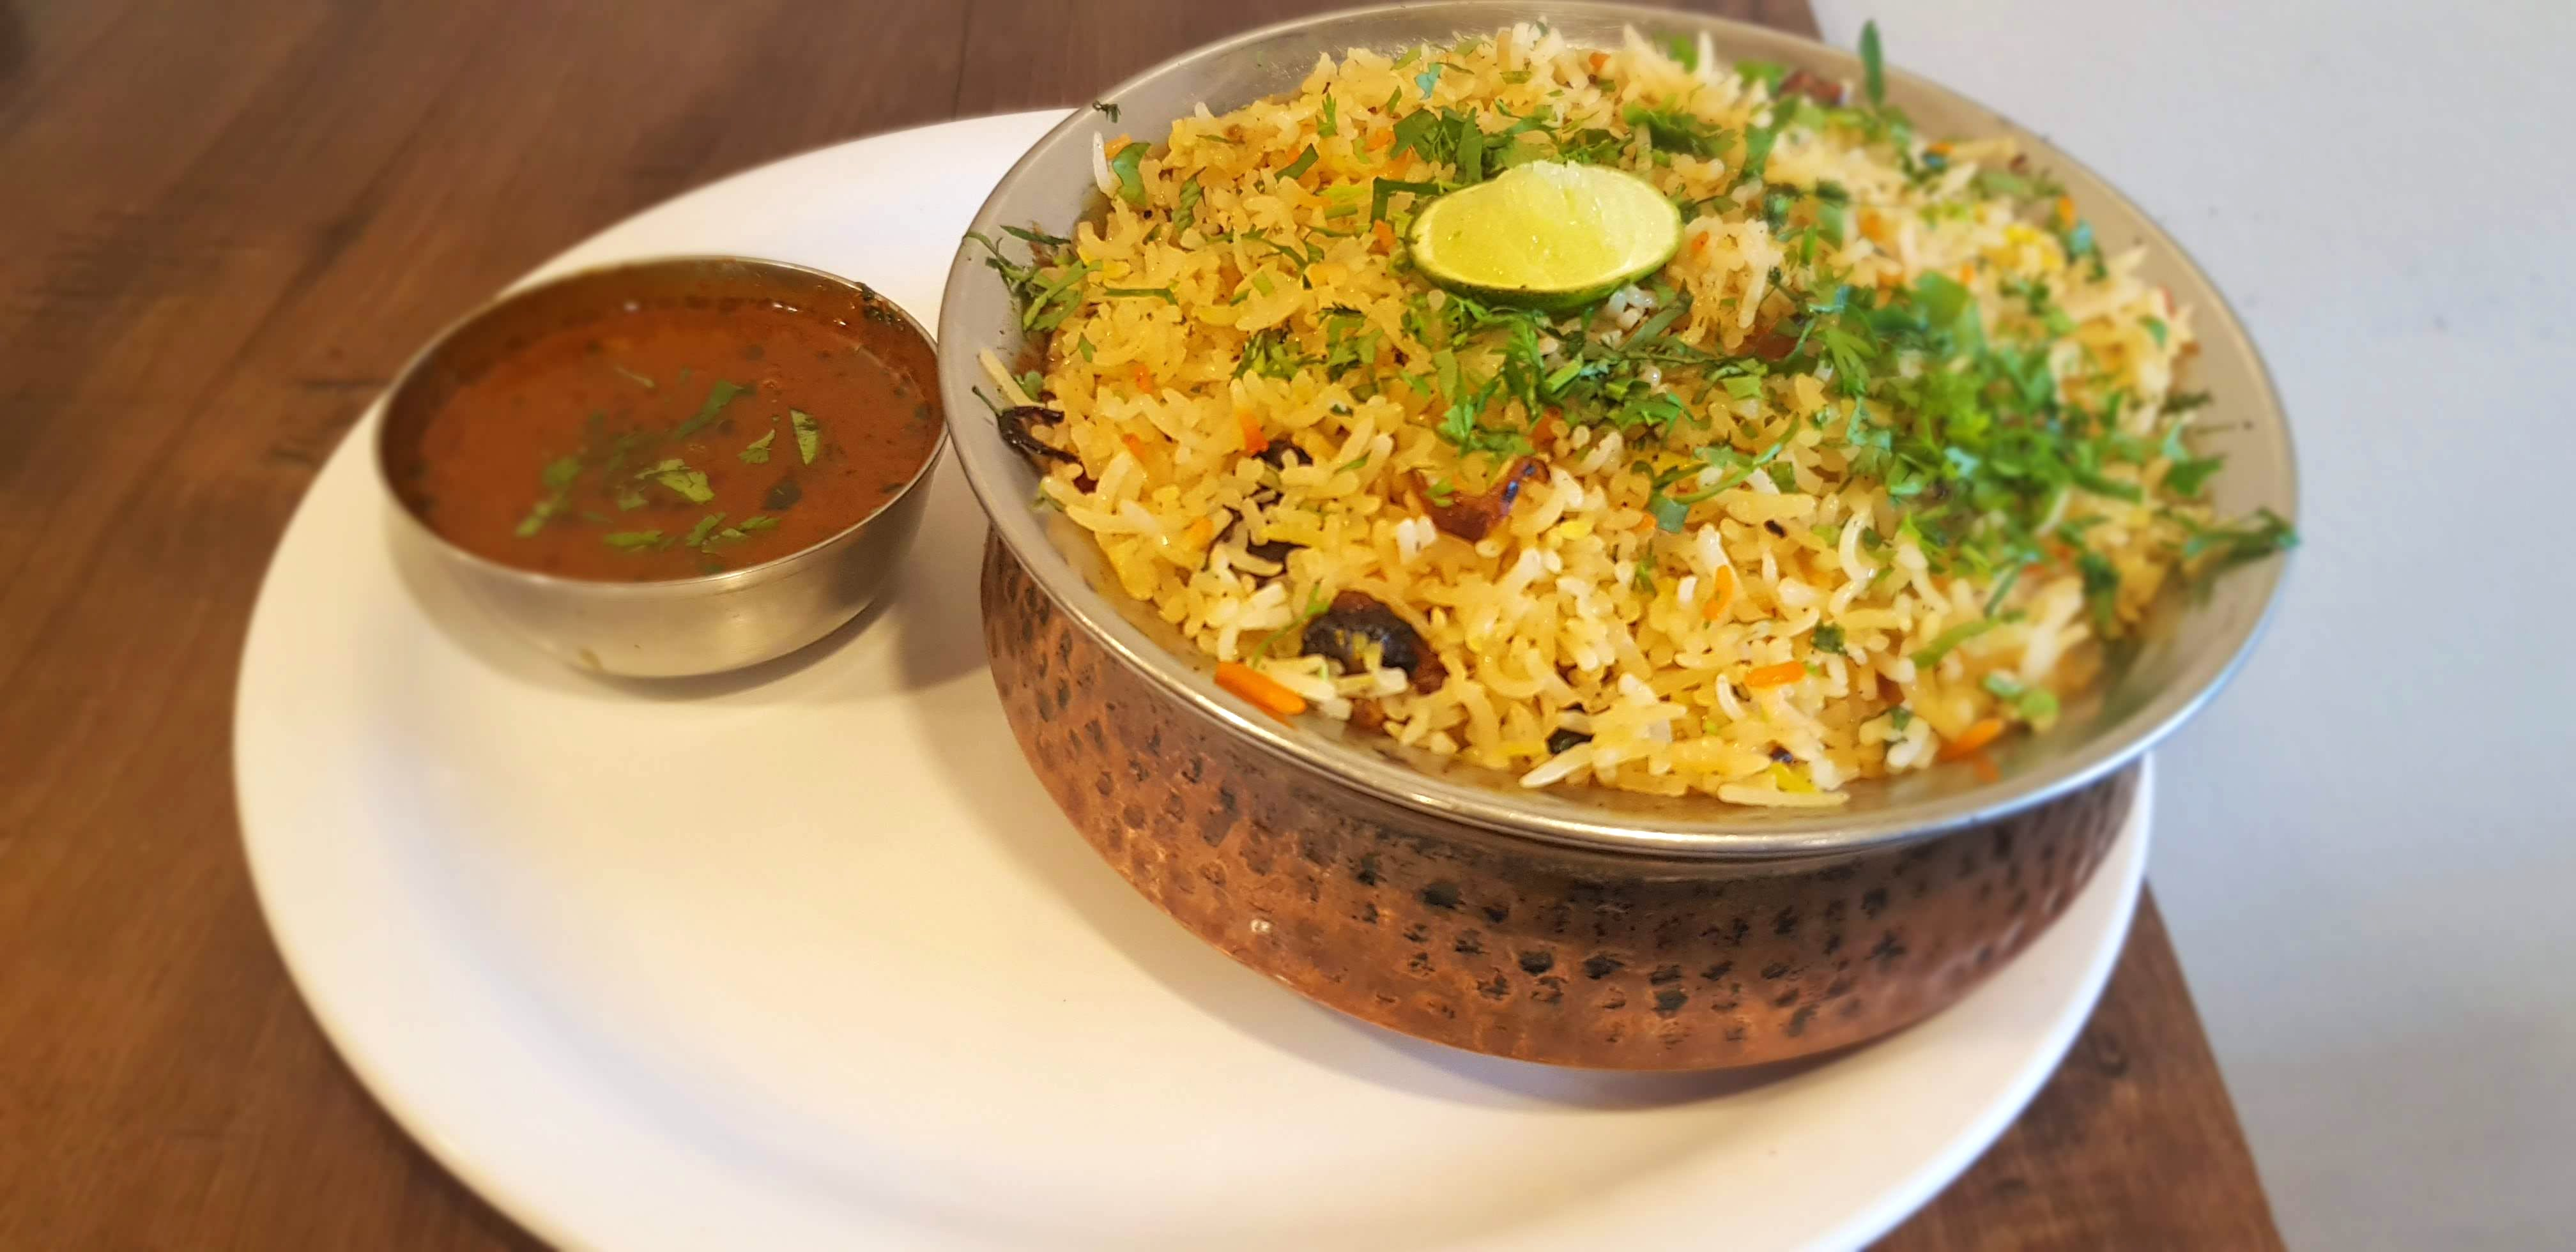 Dish,Food,Cuisine,Spiced rice,Puliyogare,Biryani,Ingredient,Hyderabadi biriyani,Yeung chow fried rice,Pulihora